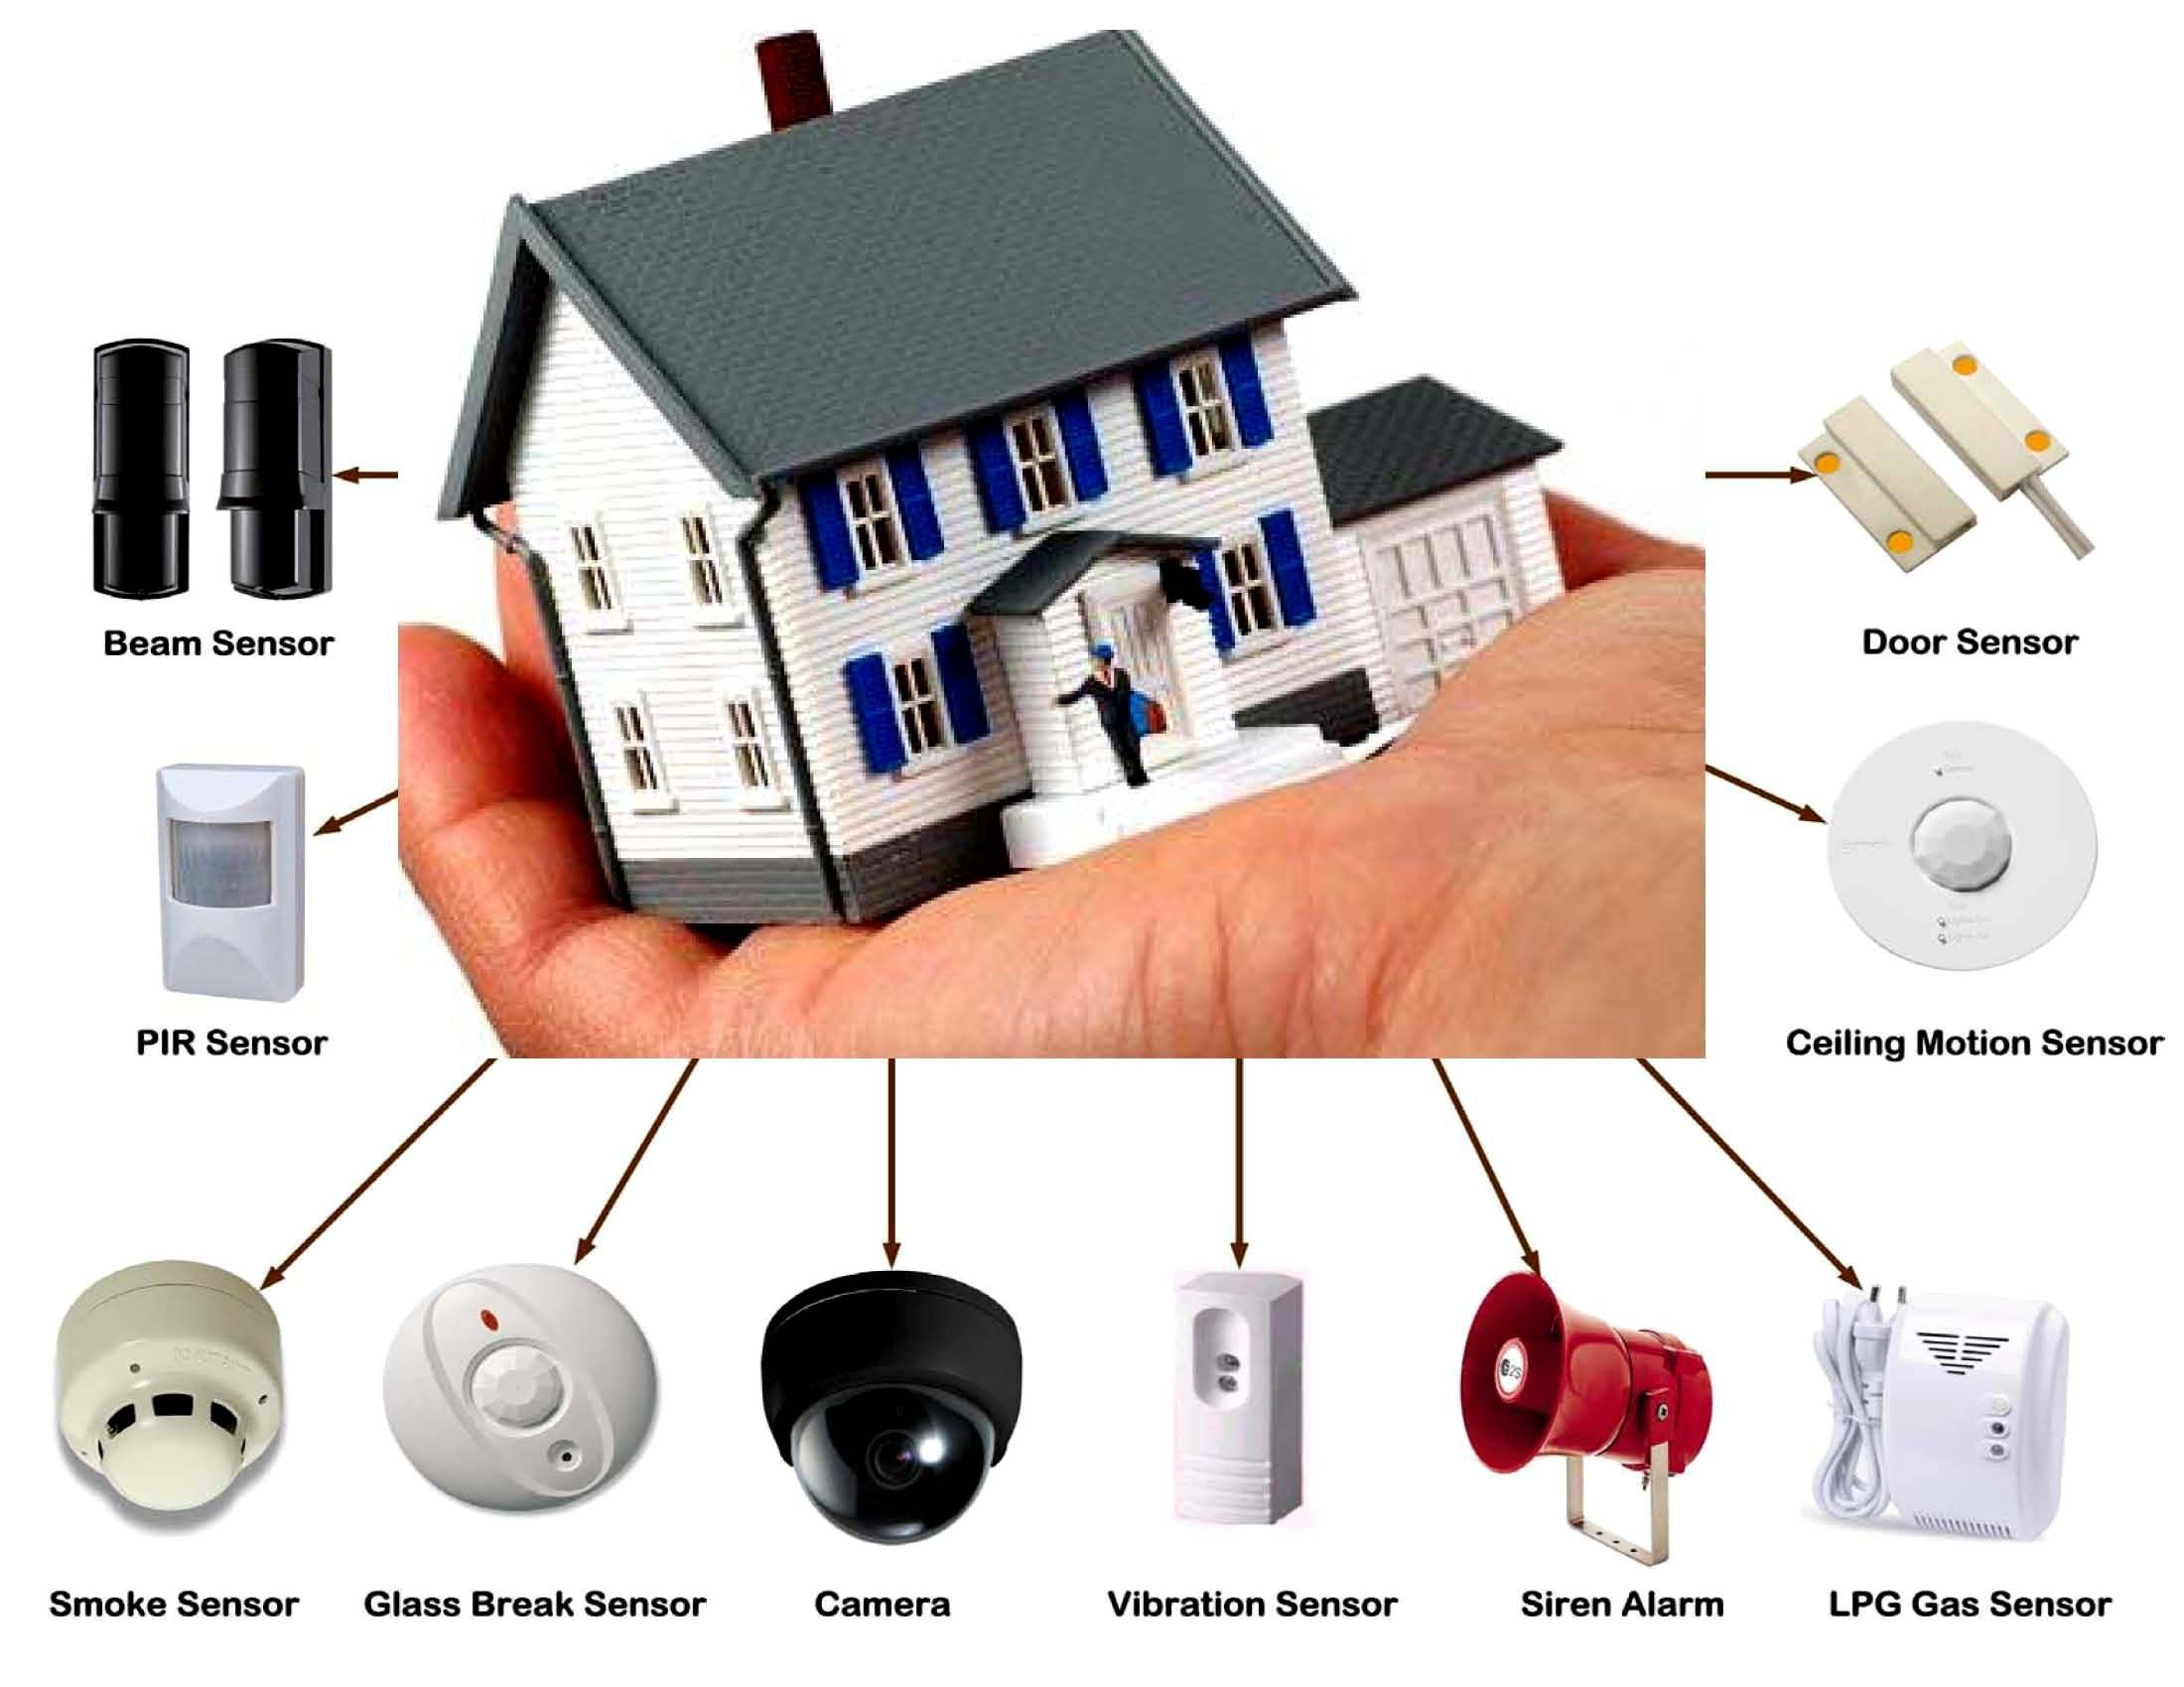 Diy Home Security Devices Our Experts Review And Compare The Top Diy Home Security